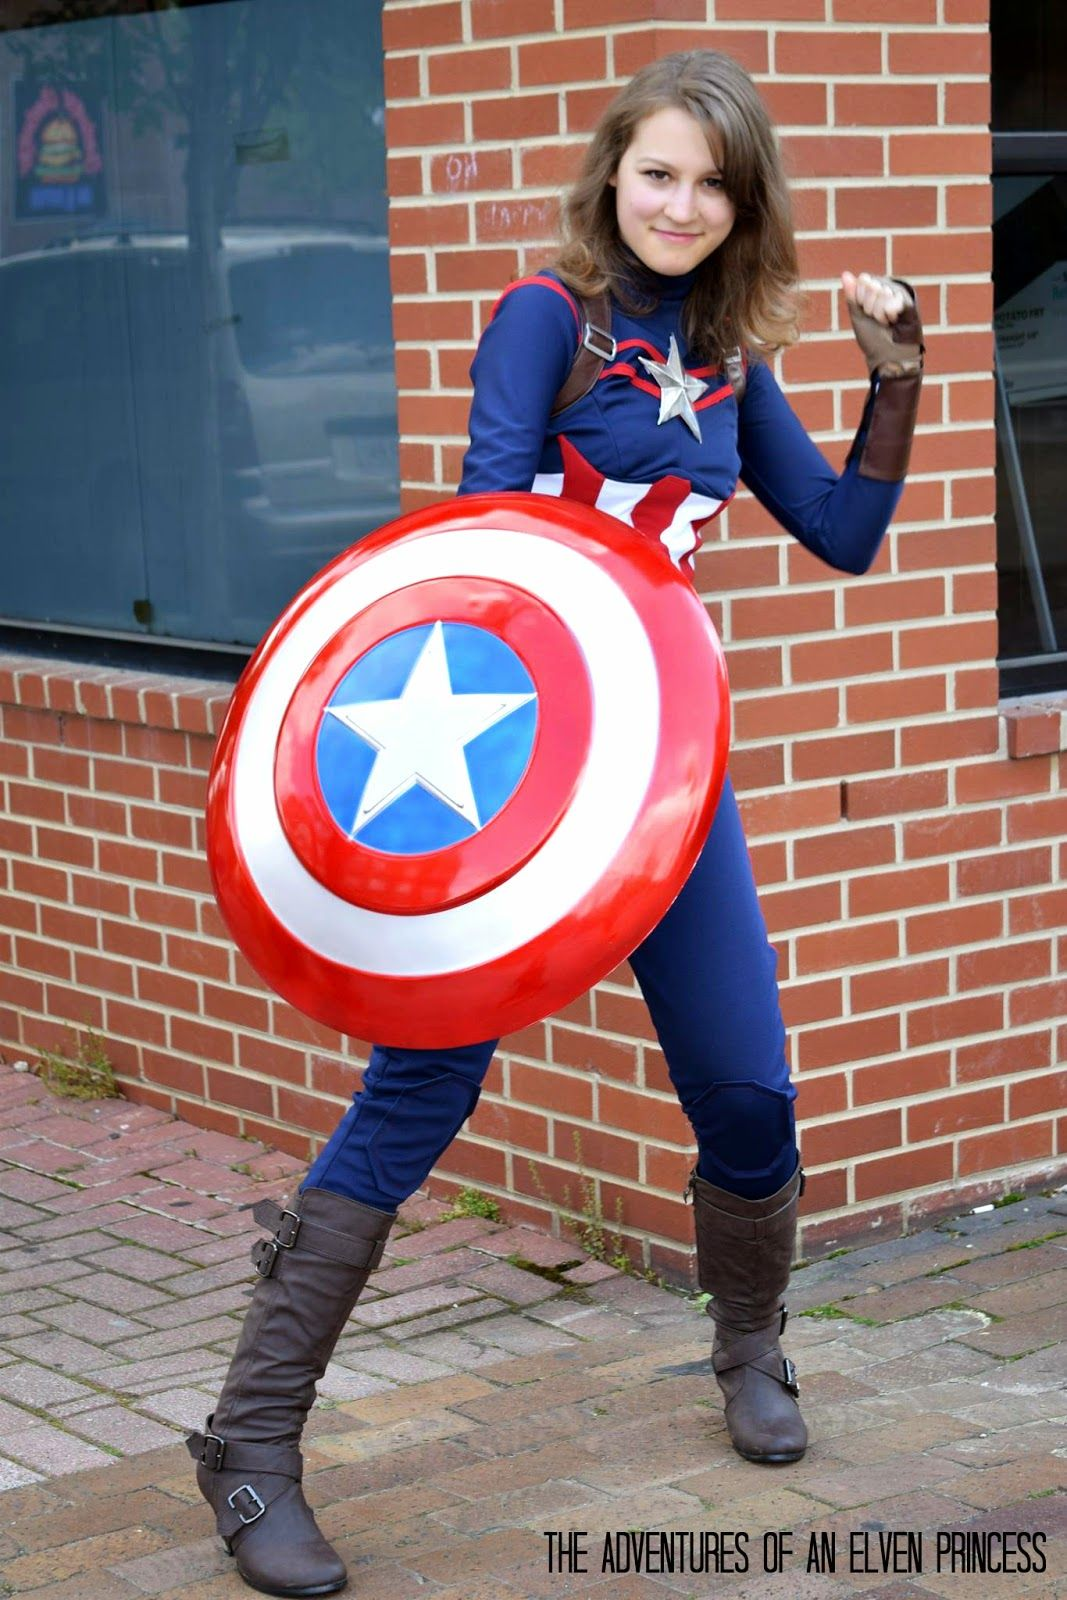 eb2d941087 The Adventures of An Elven Princess  Captain America Cosplay - The  Photoshoot